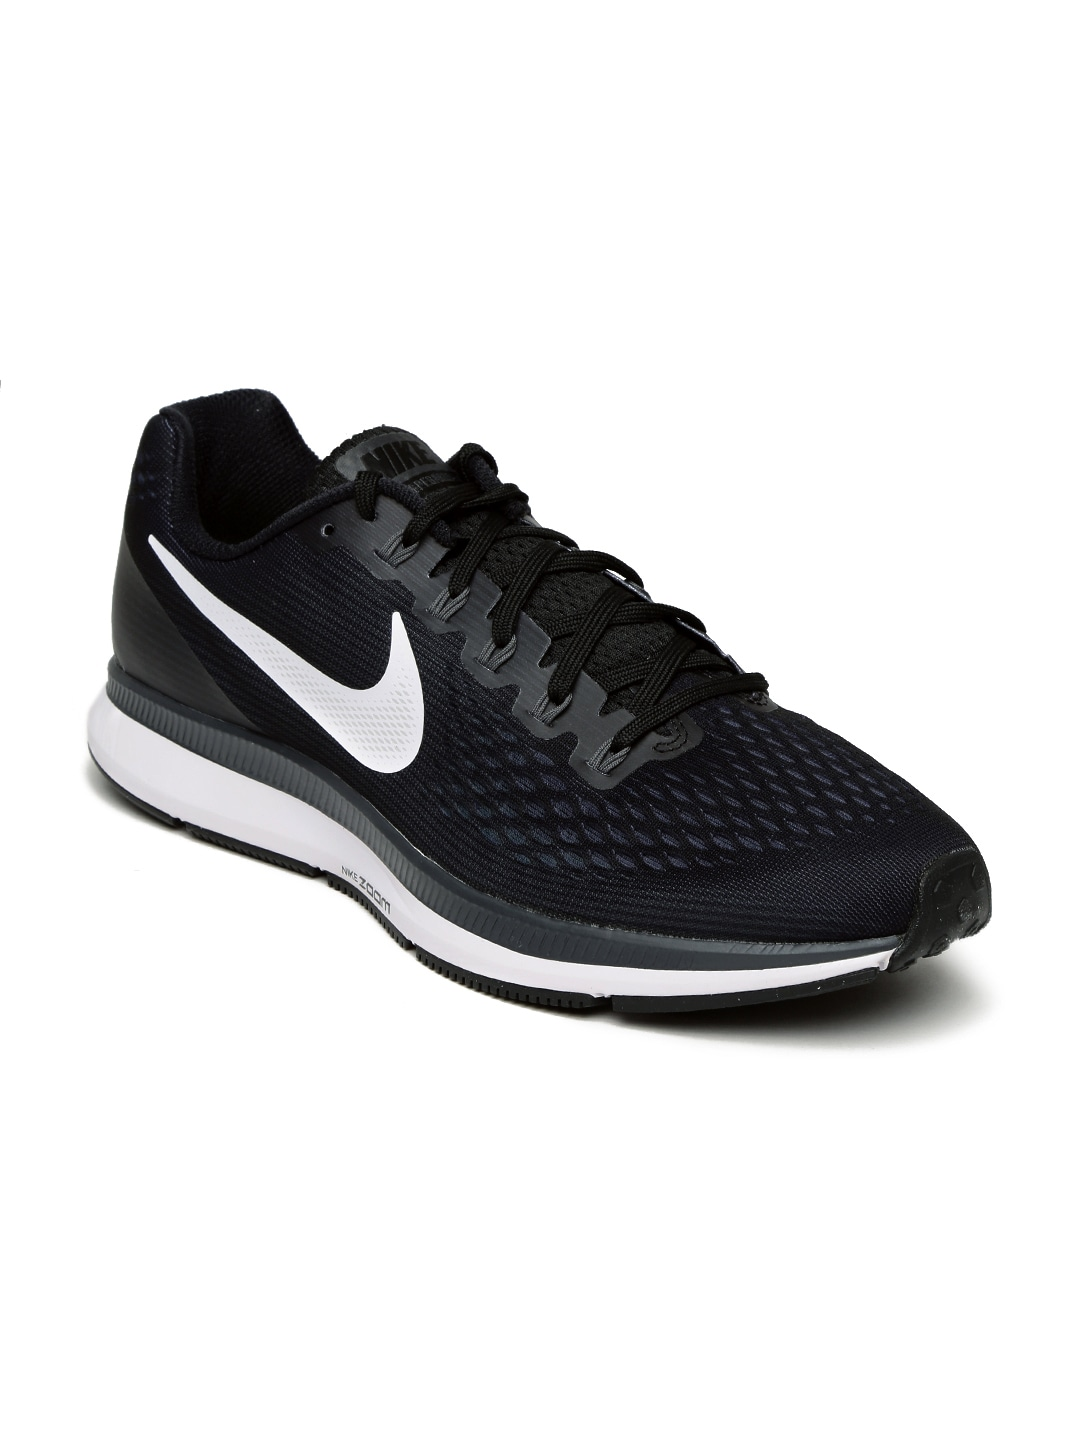 Pegasus 34 - Buy Pegasus 34 online in India 40ae6017ec70